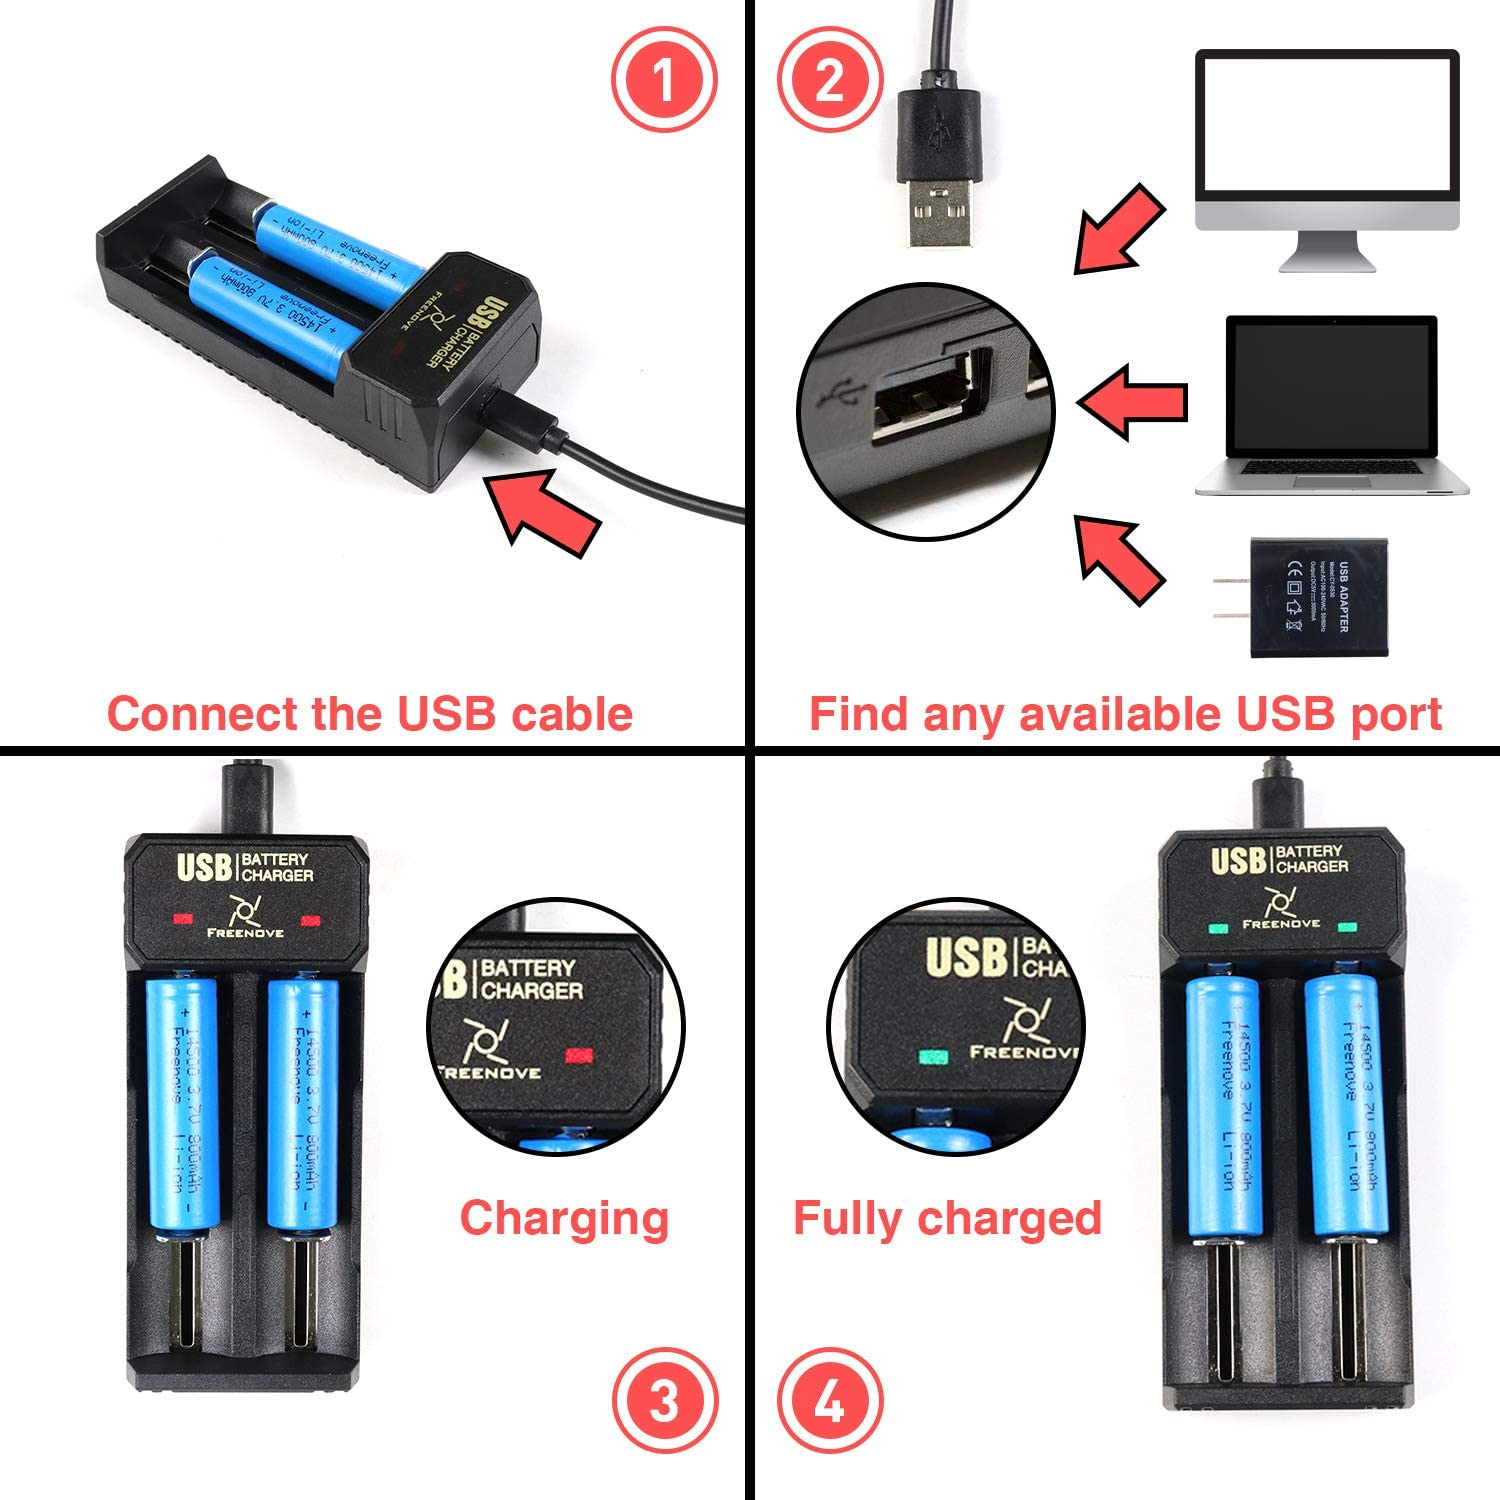 Freenove 18650 Rechargeable Battery 3.7V, 3400mAh, Li-ion, Pointed Head, No Protective Board, 2PCS USB Powered and Charger